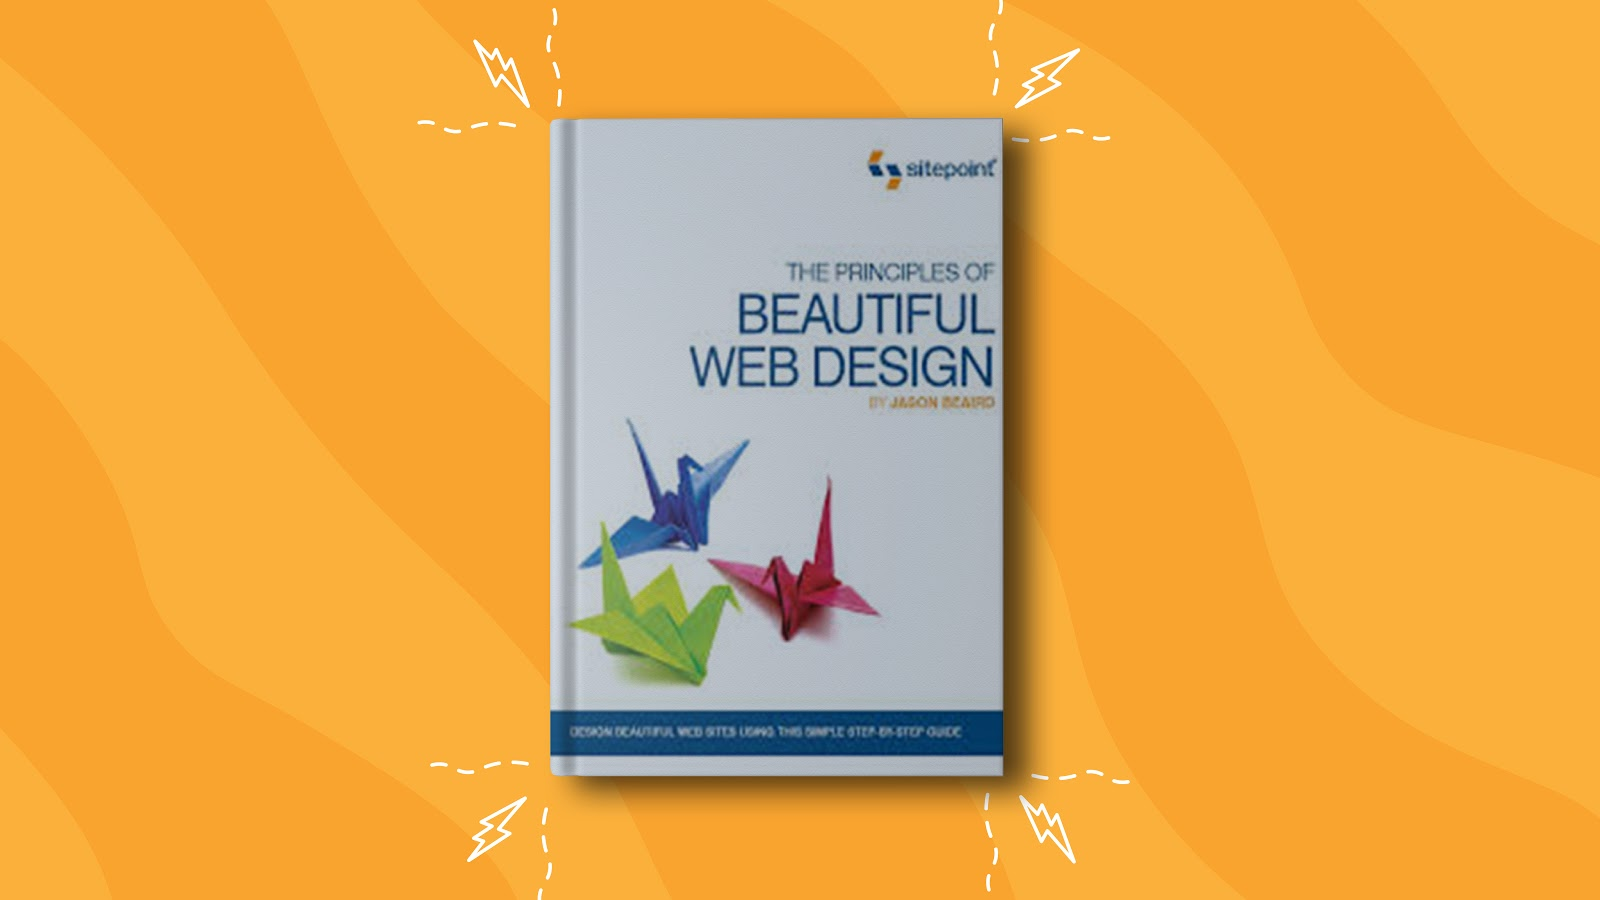 The Principles of Beautiful Web Designs by Jason Beaird